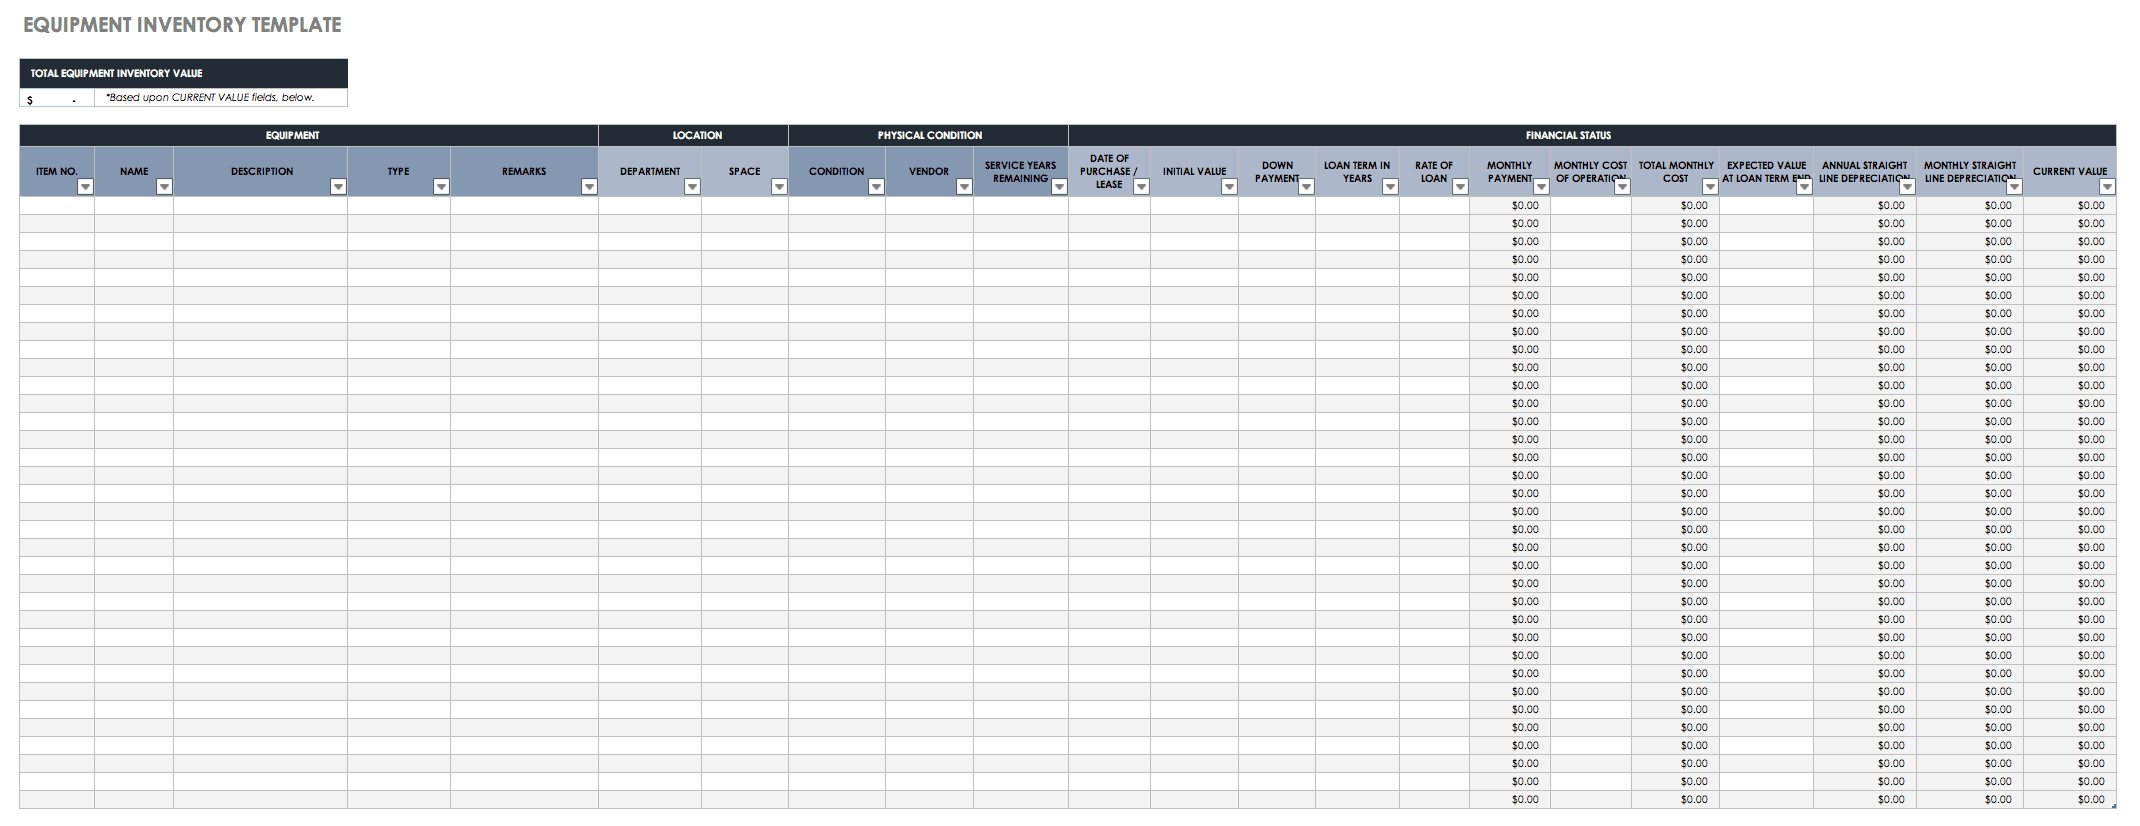 toner inventory template